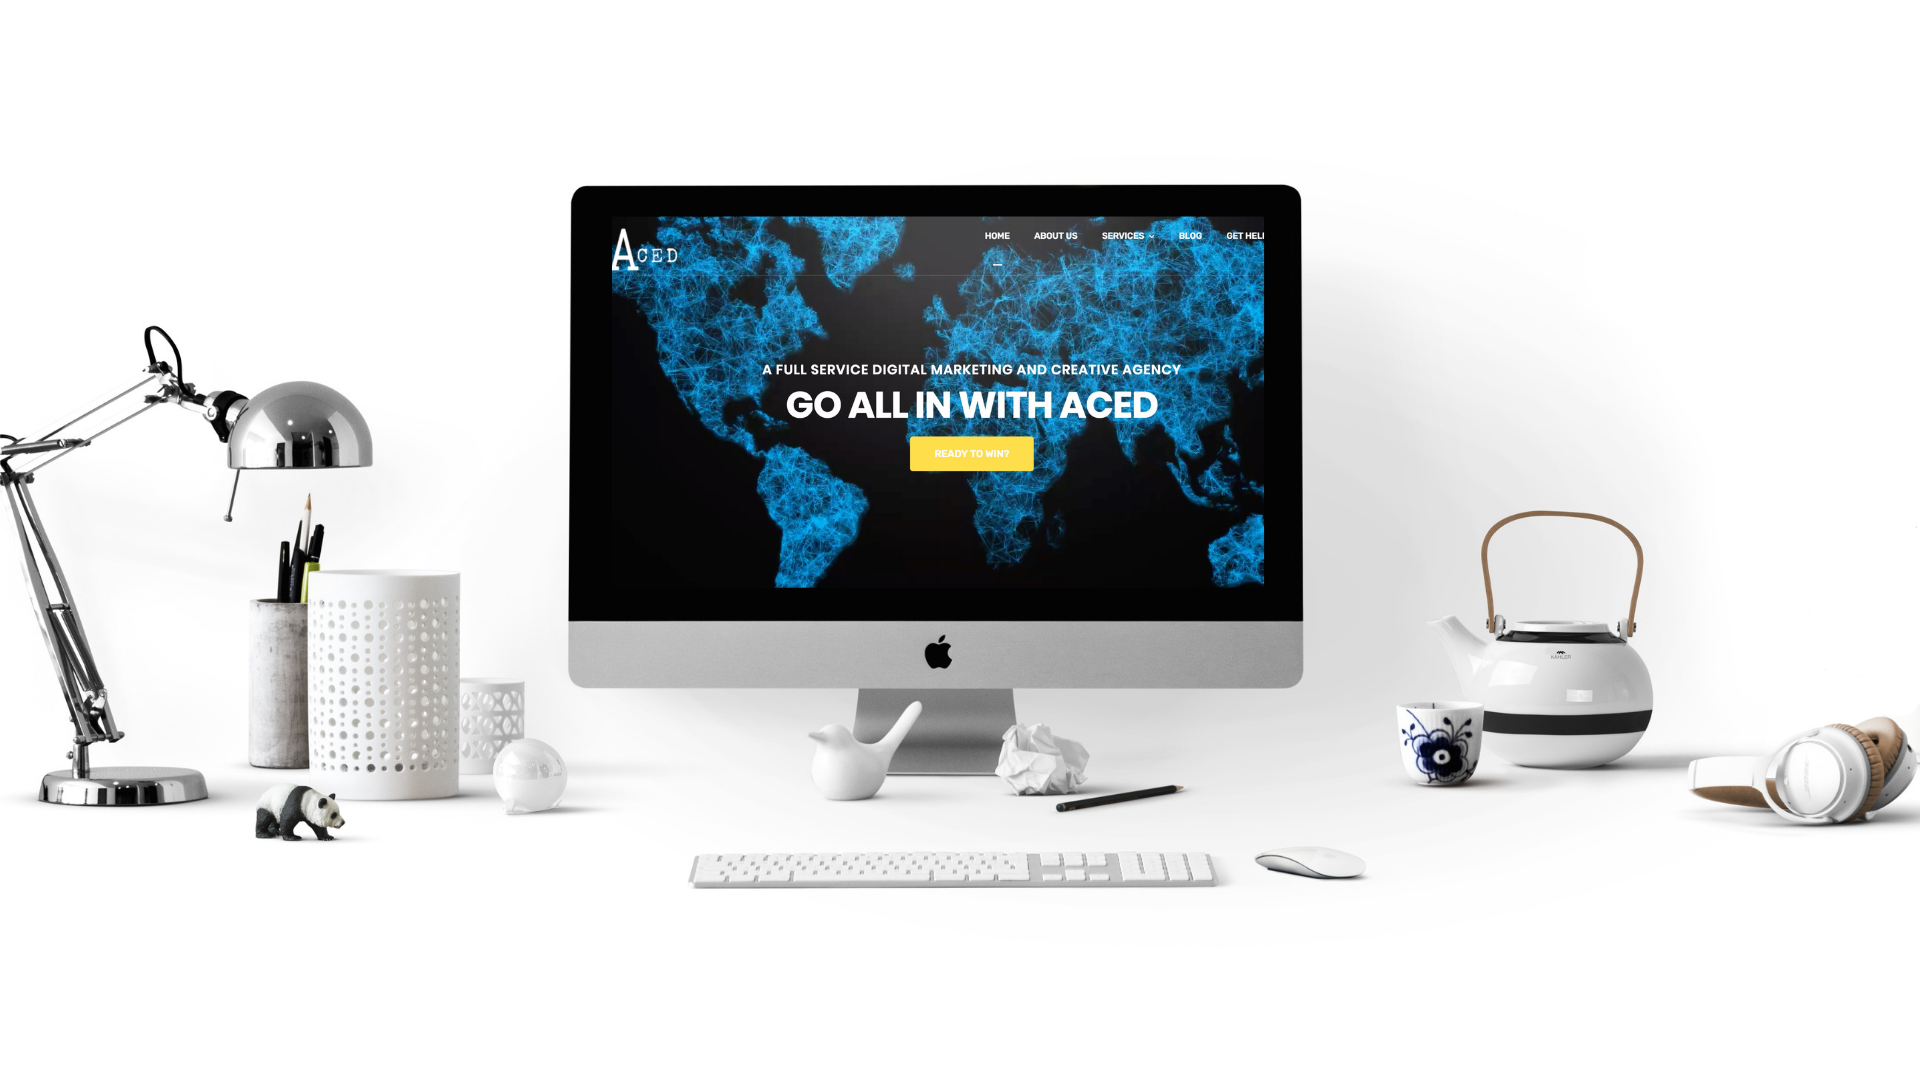 Poca, West Virginia website design and development service by aced agency